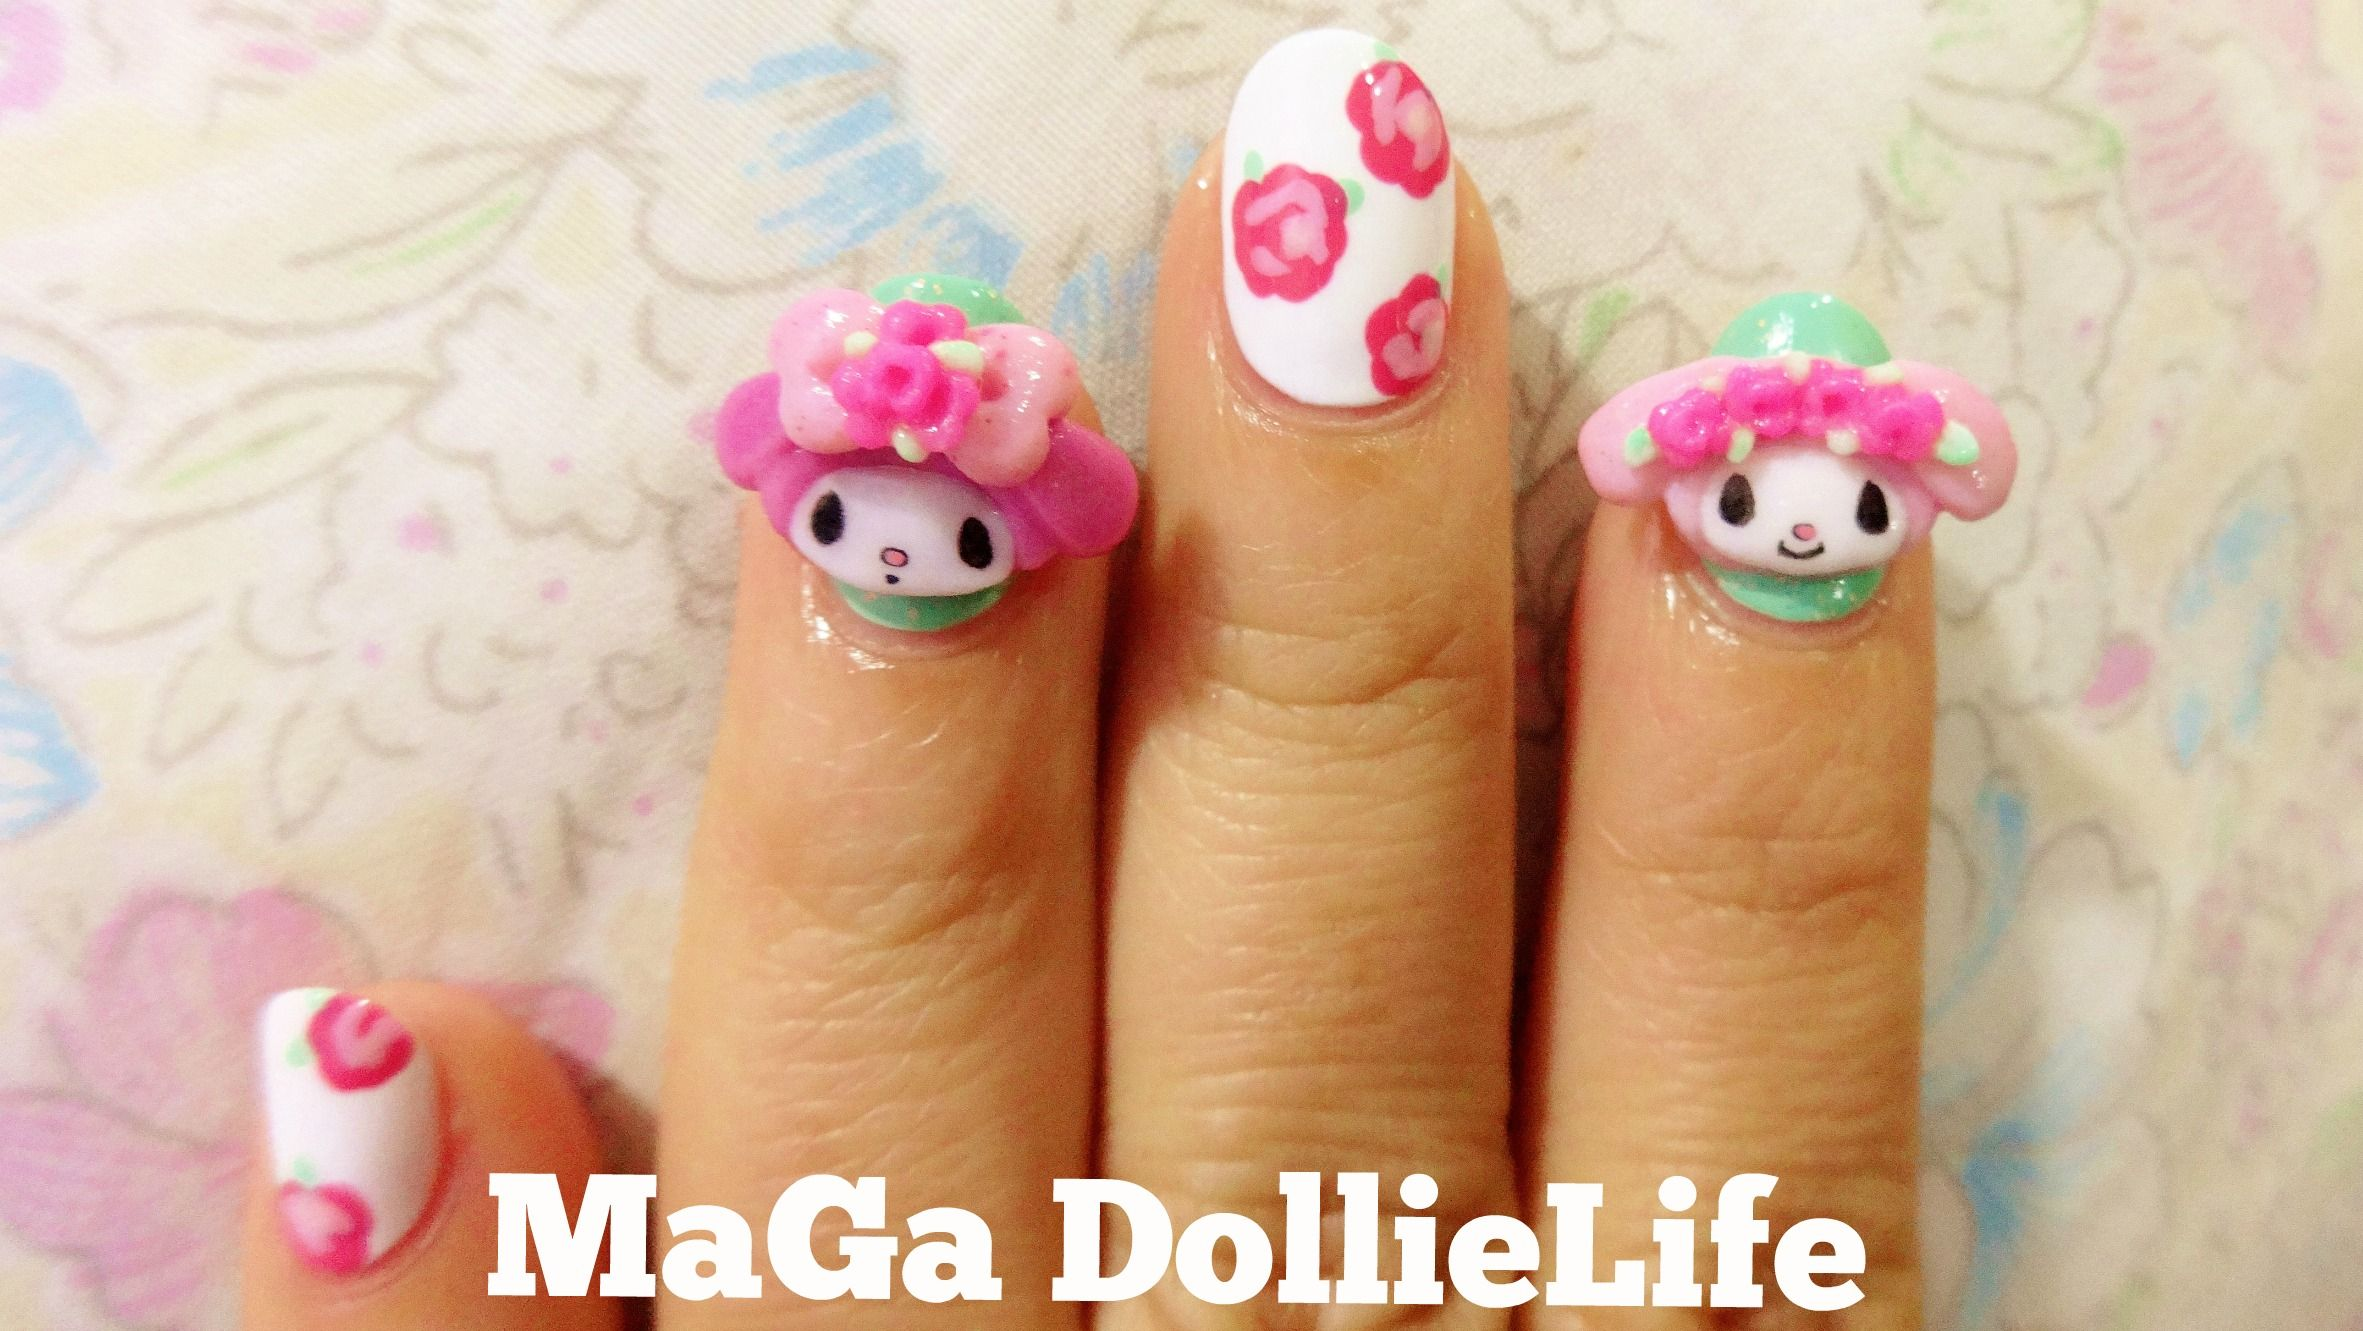 My Melody X Liz Lisa Inspired 3d Nail Art D I Made The 3d Nail Art With Colored Acrylic Powder I Also Used Nail Polish And Ink Nail Art 3d Nail